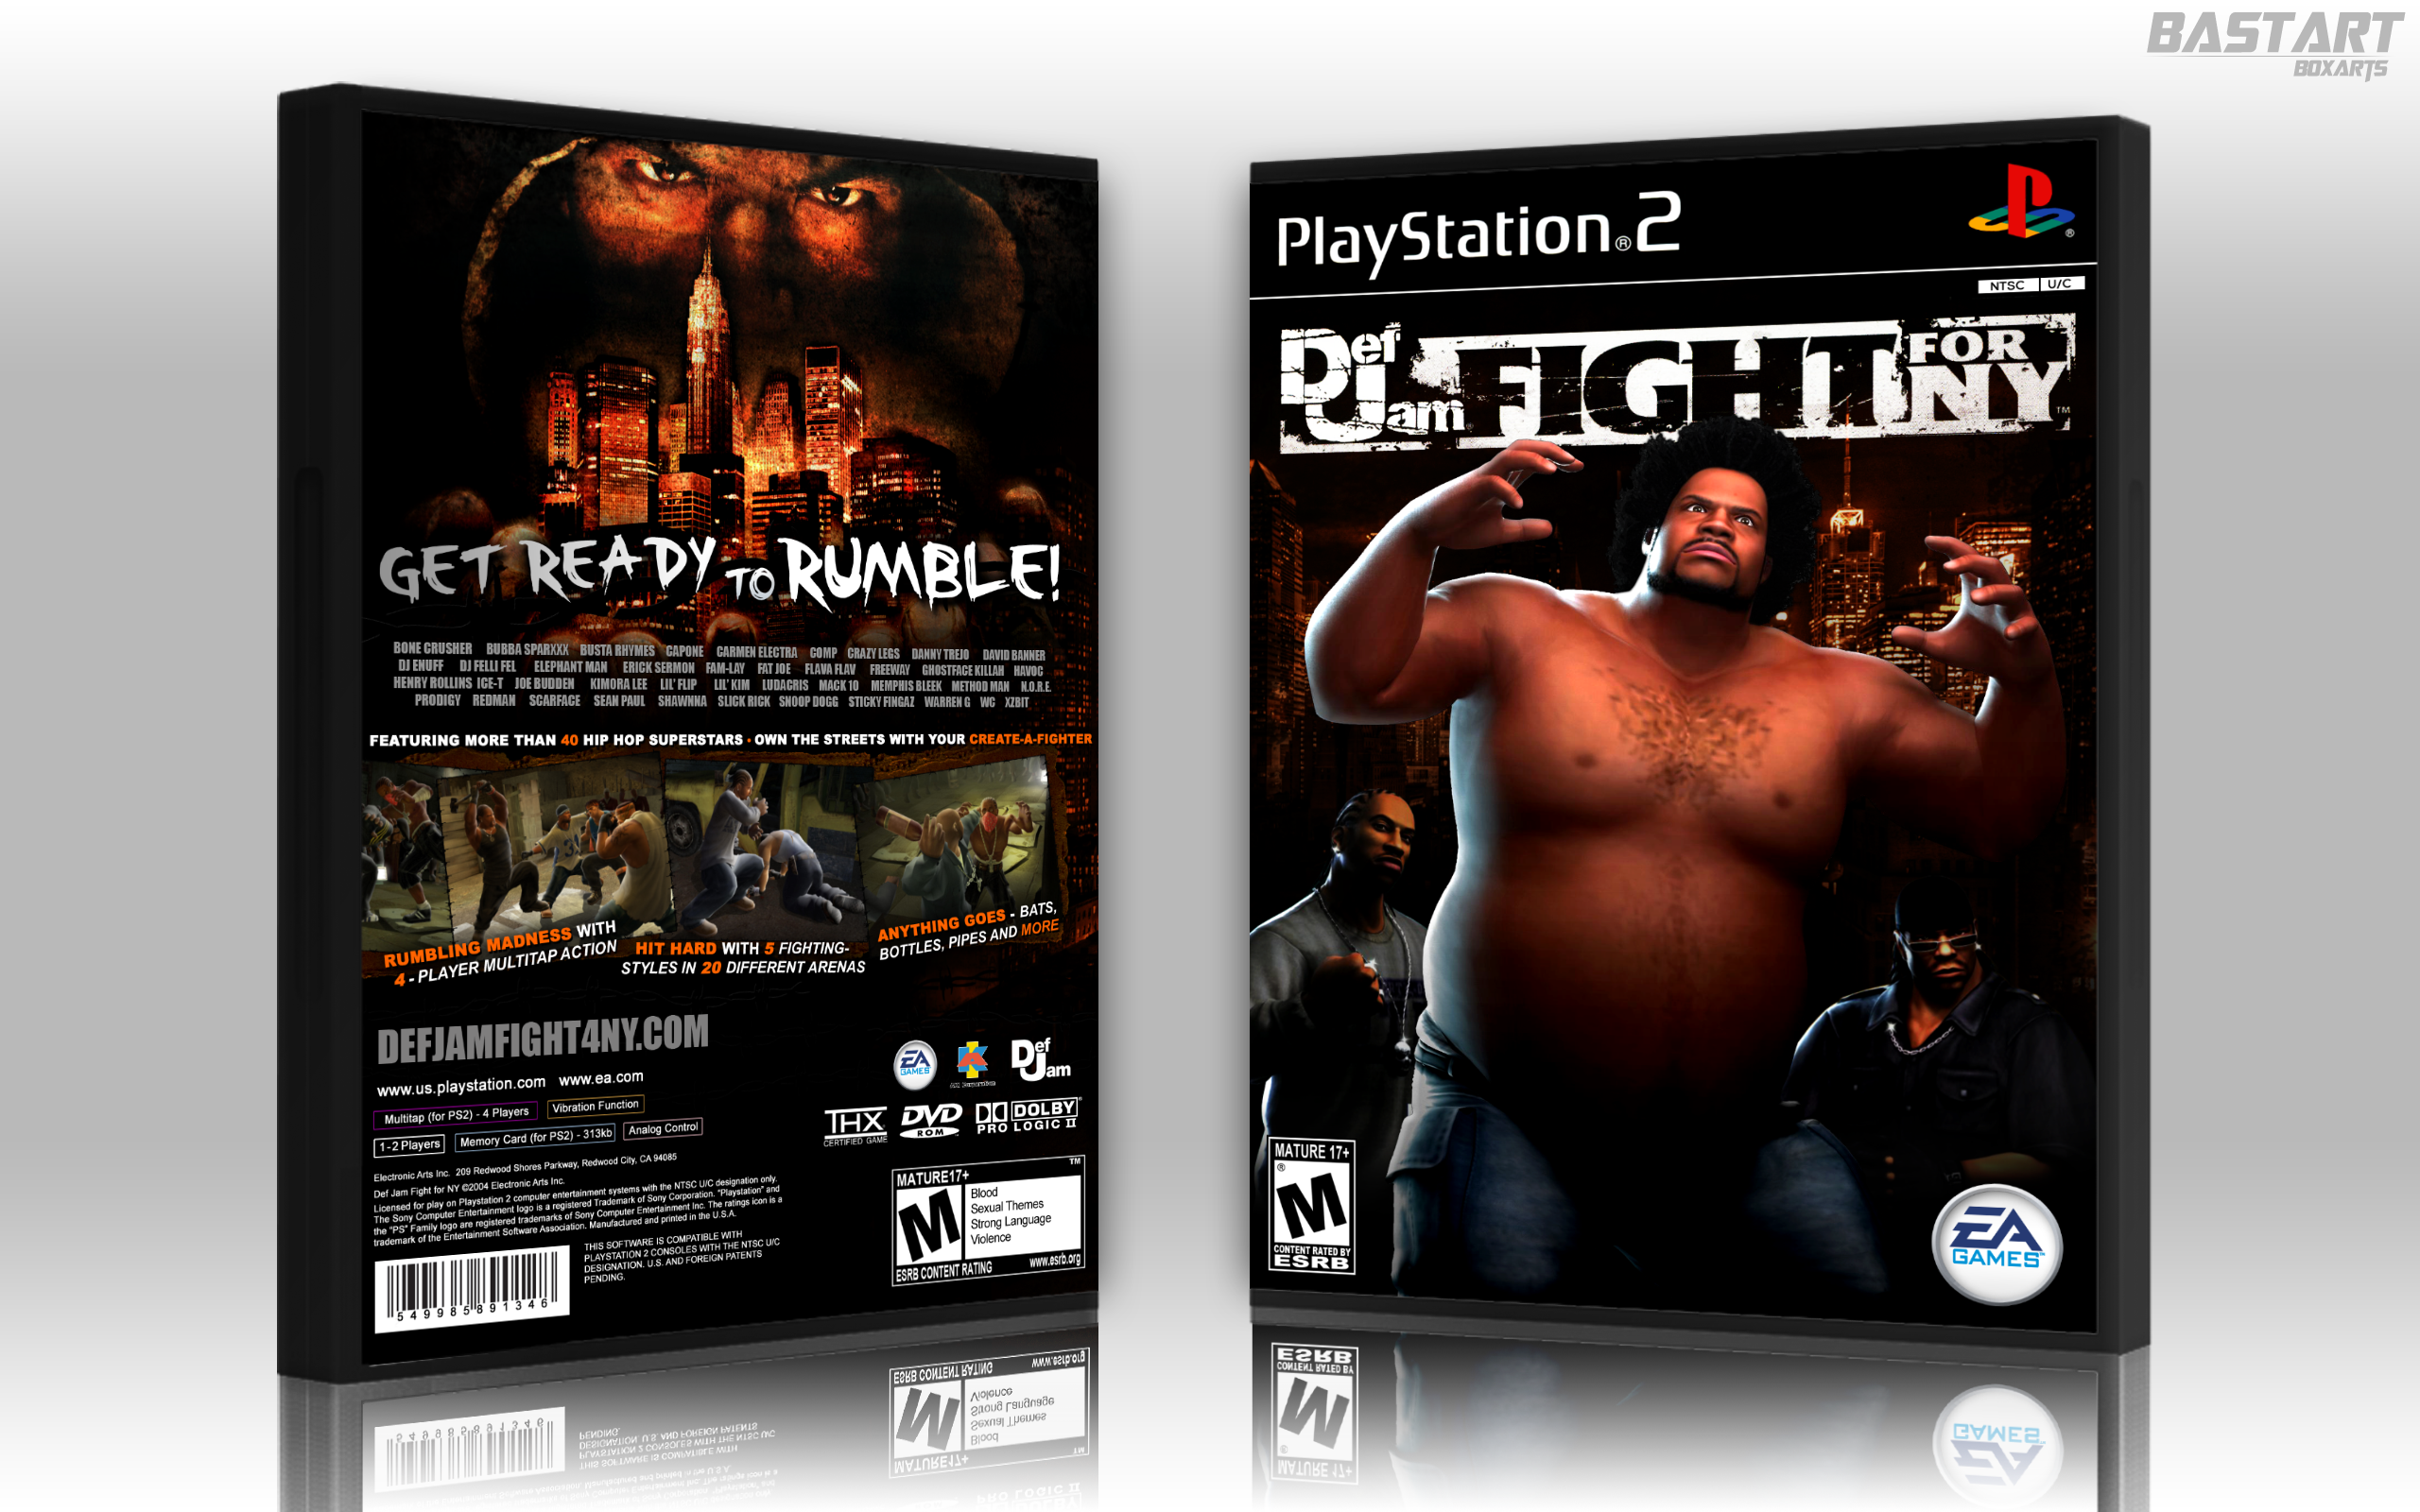 Def Jam: Fight for NY box cover